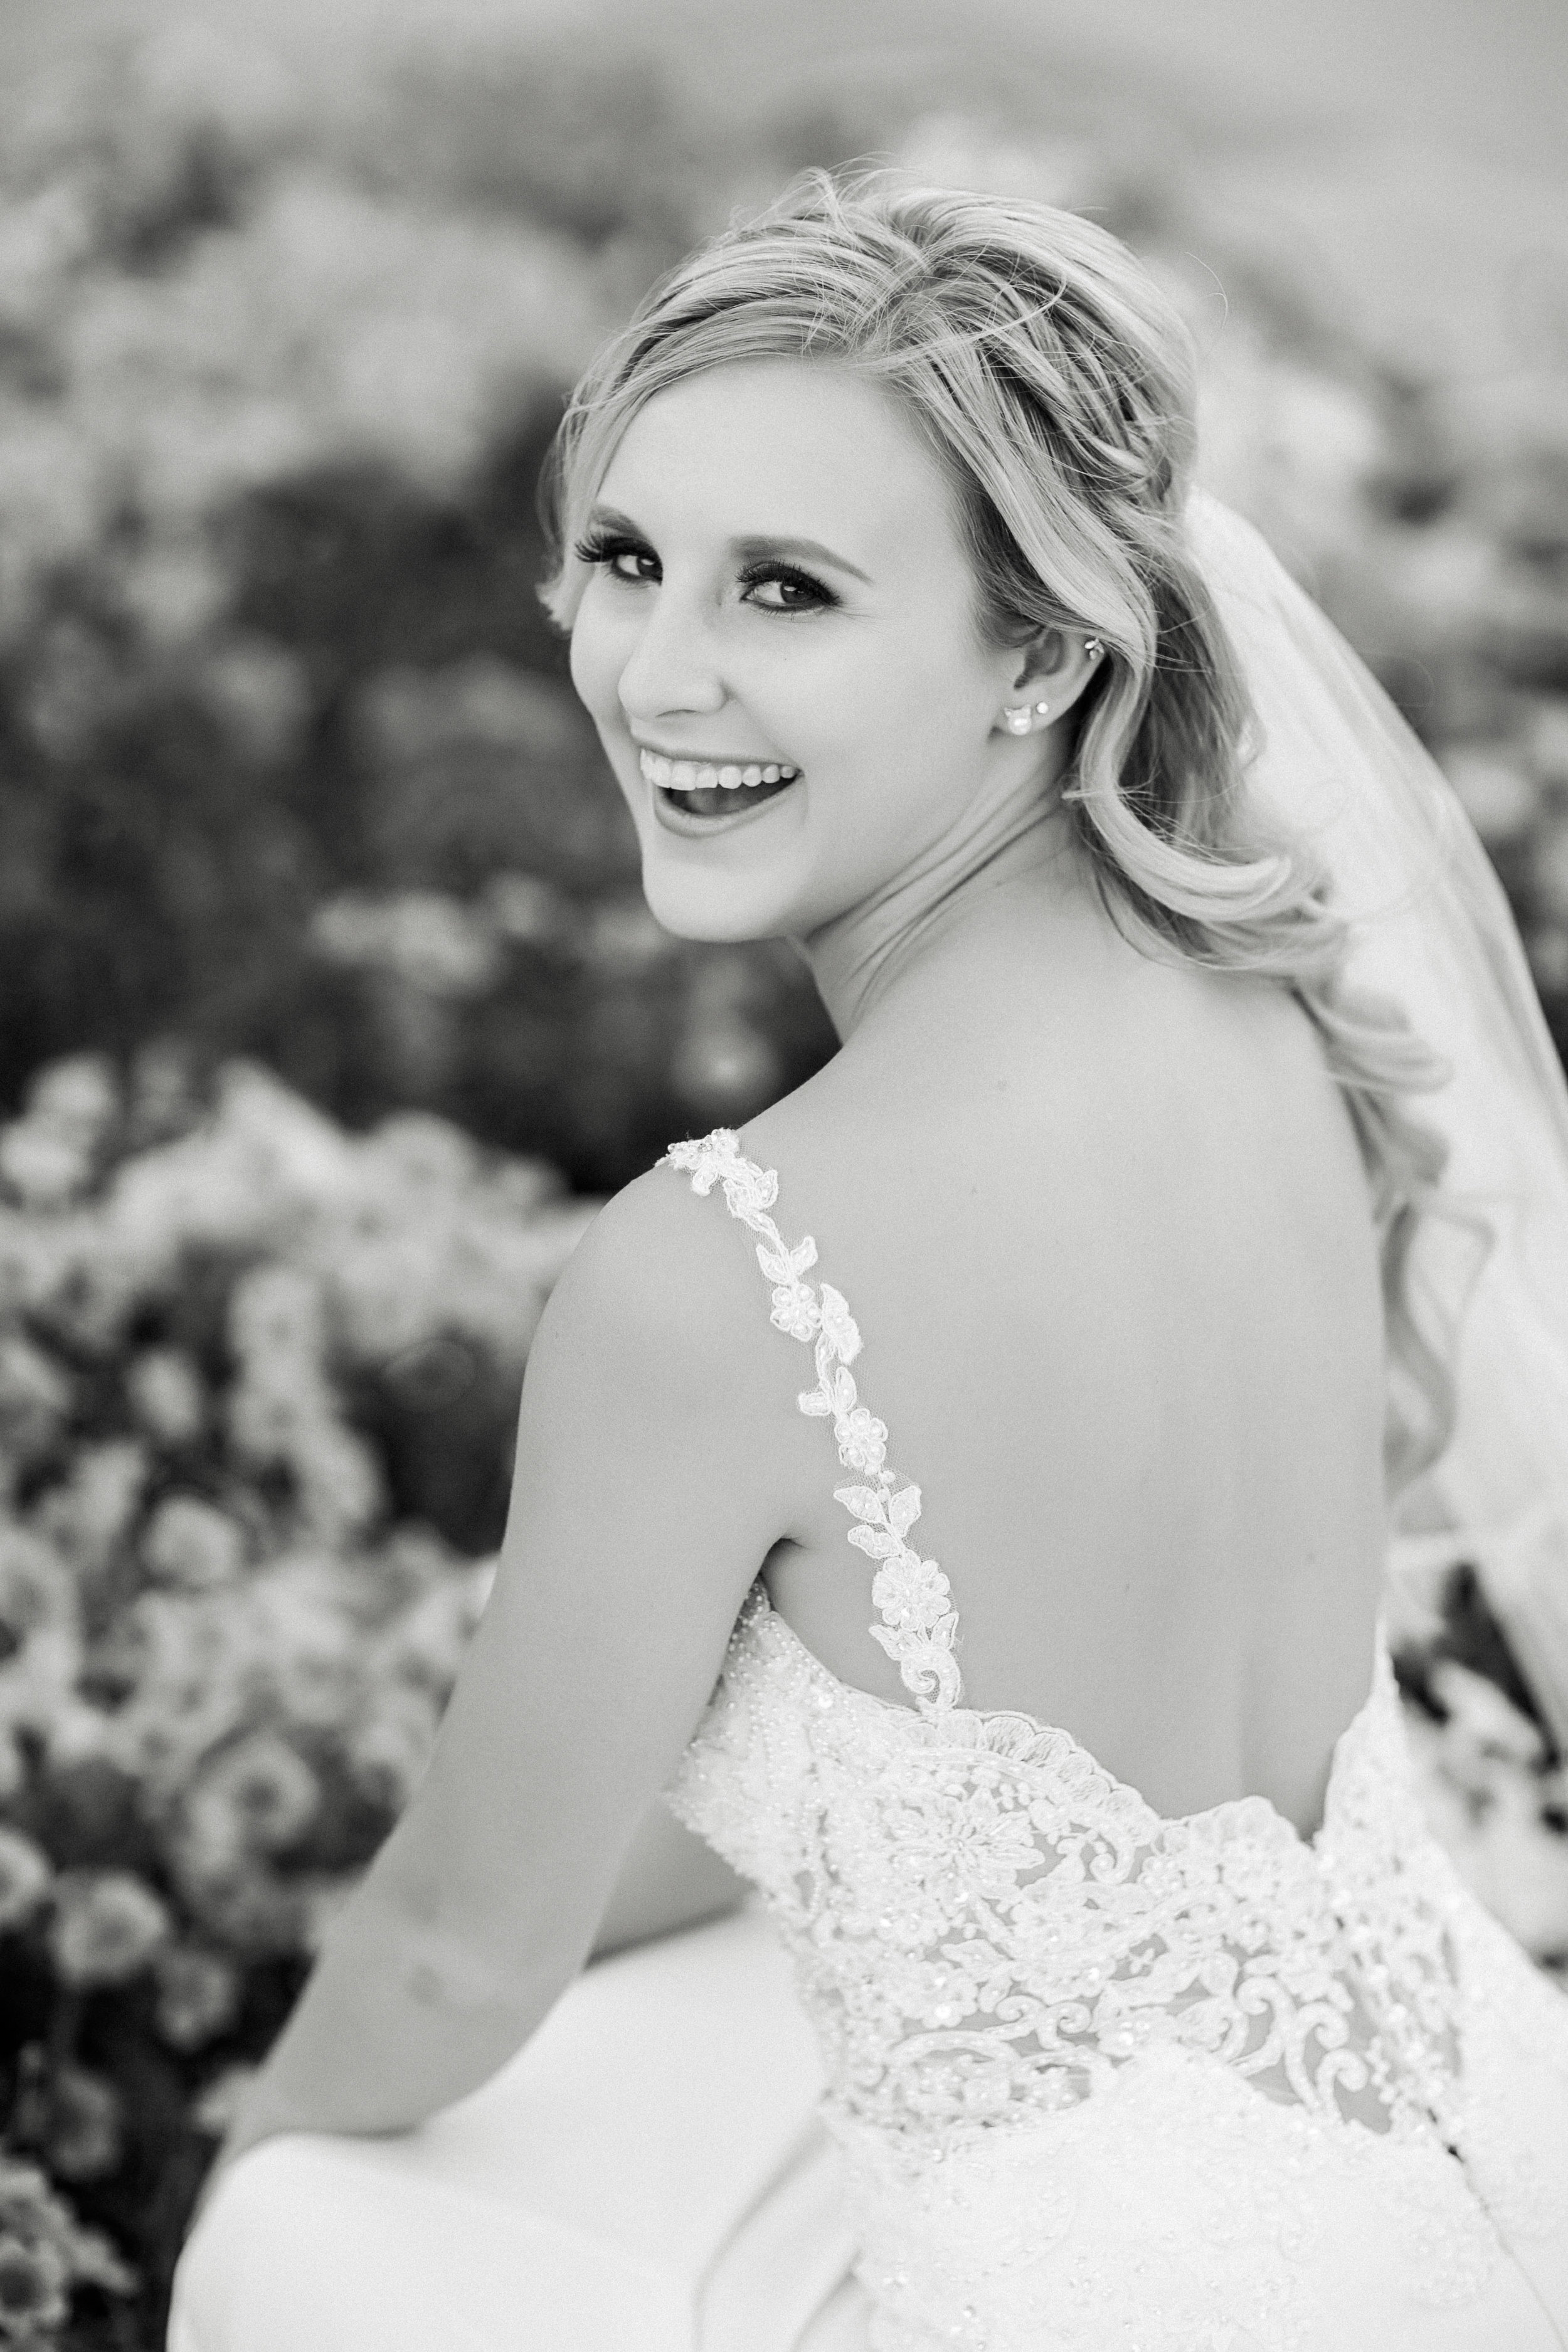 xKelsey-Bridals-143-BW.jpg